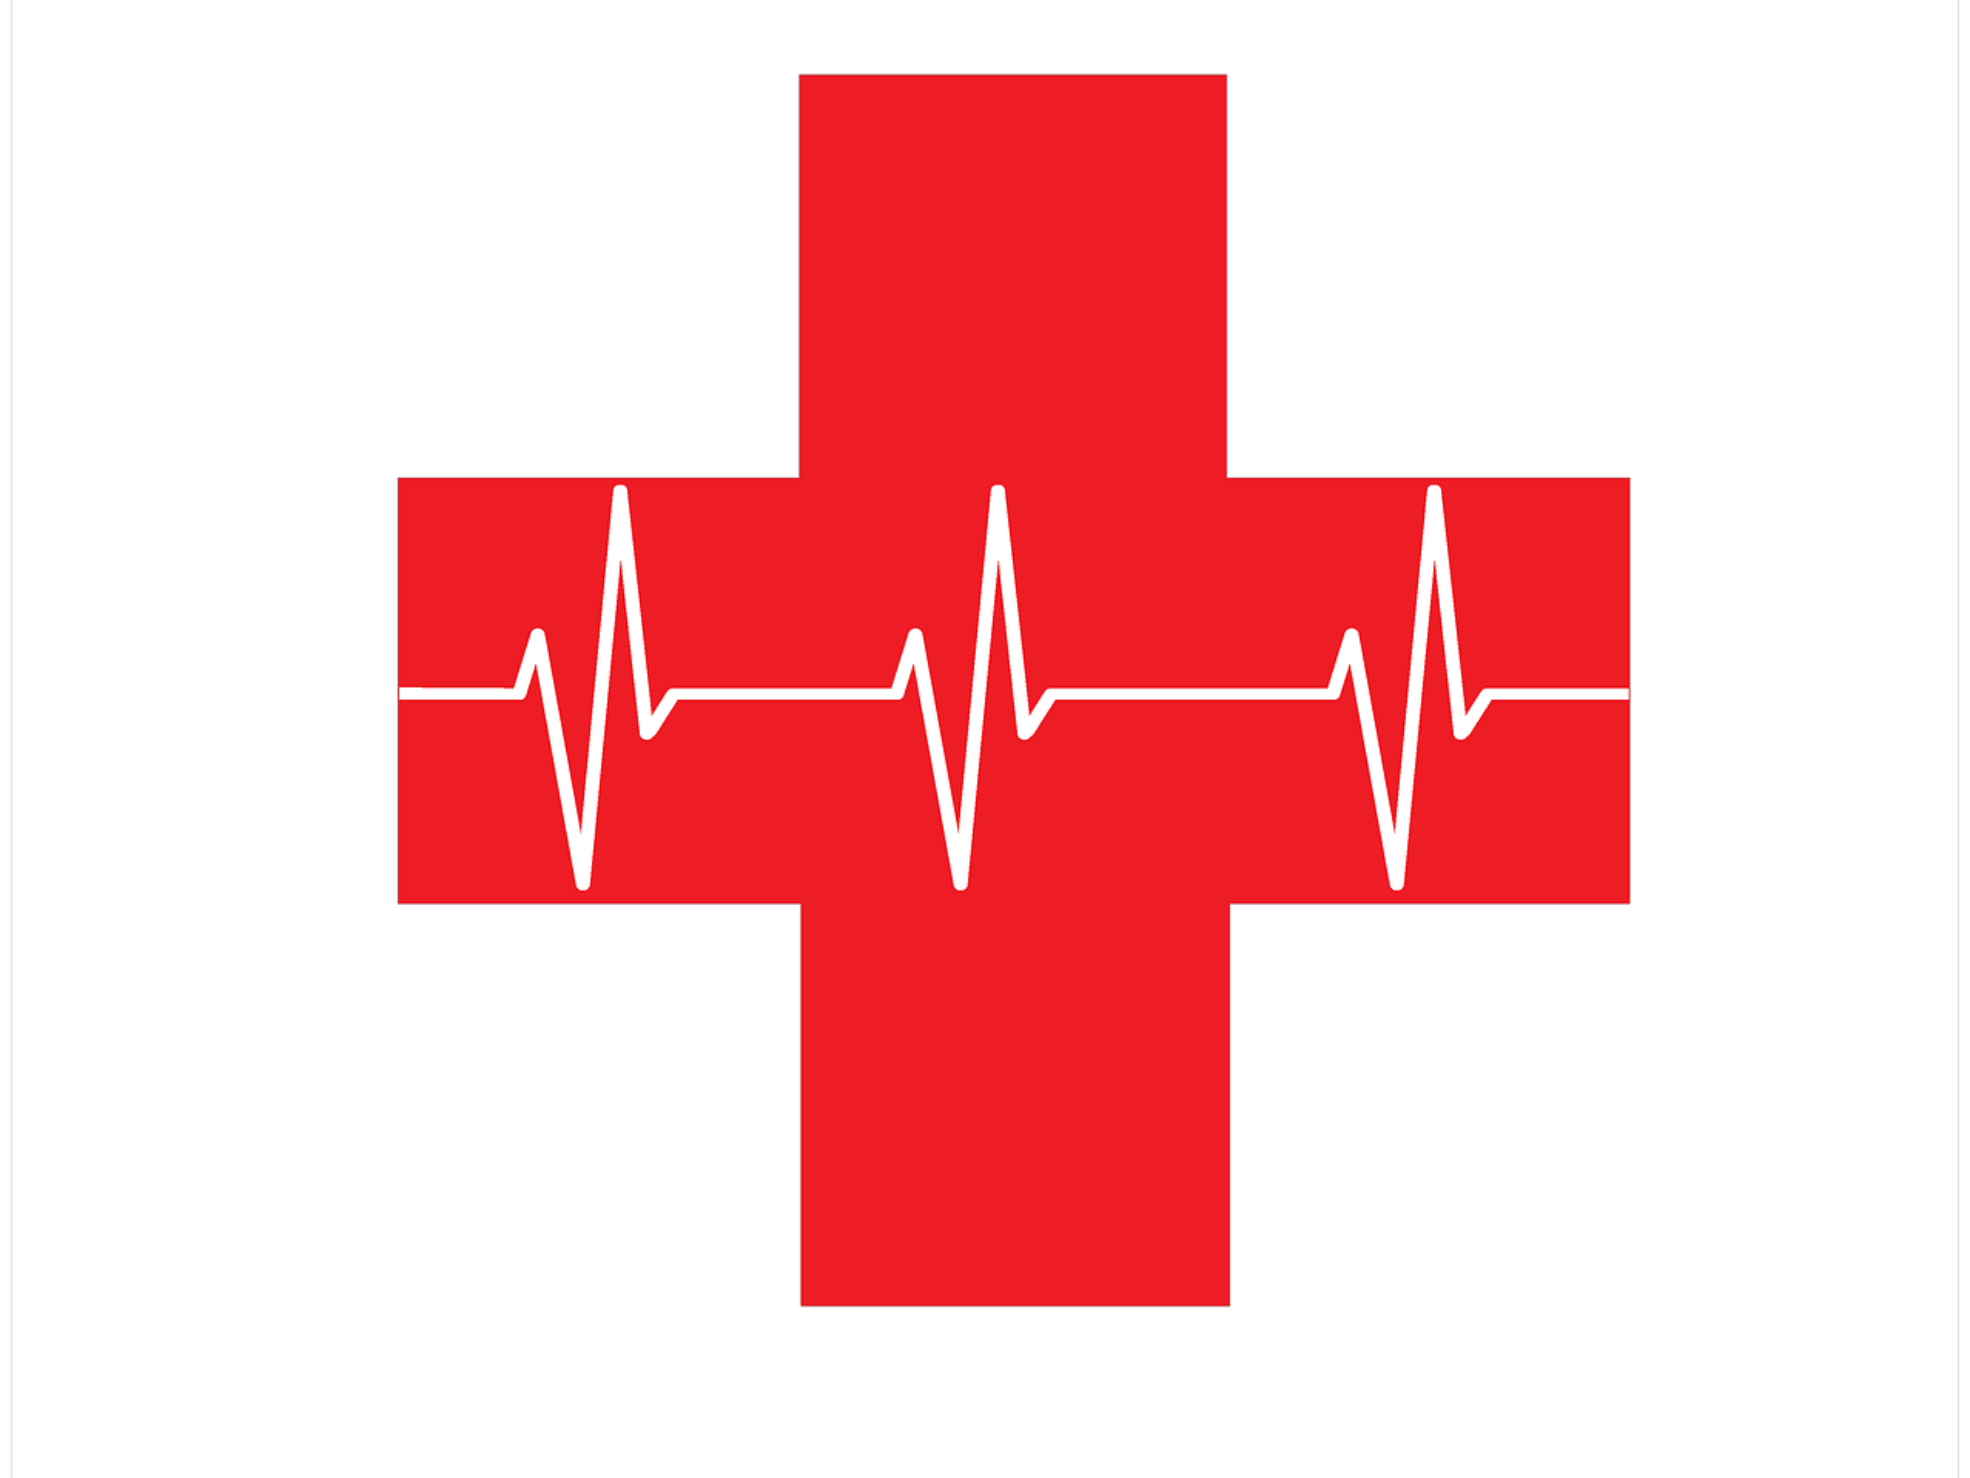 first-aid-1040283_1280